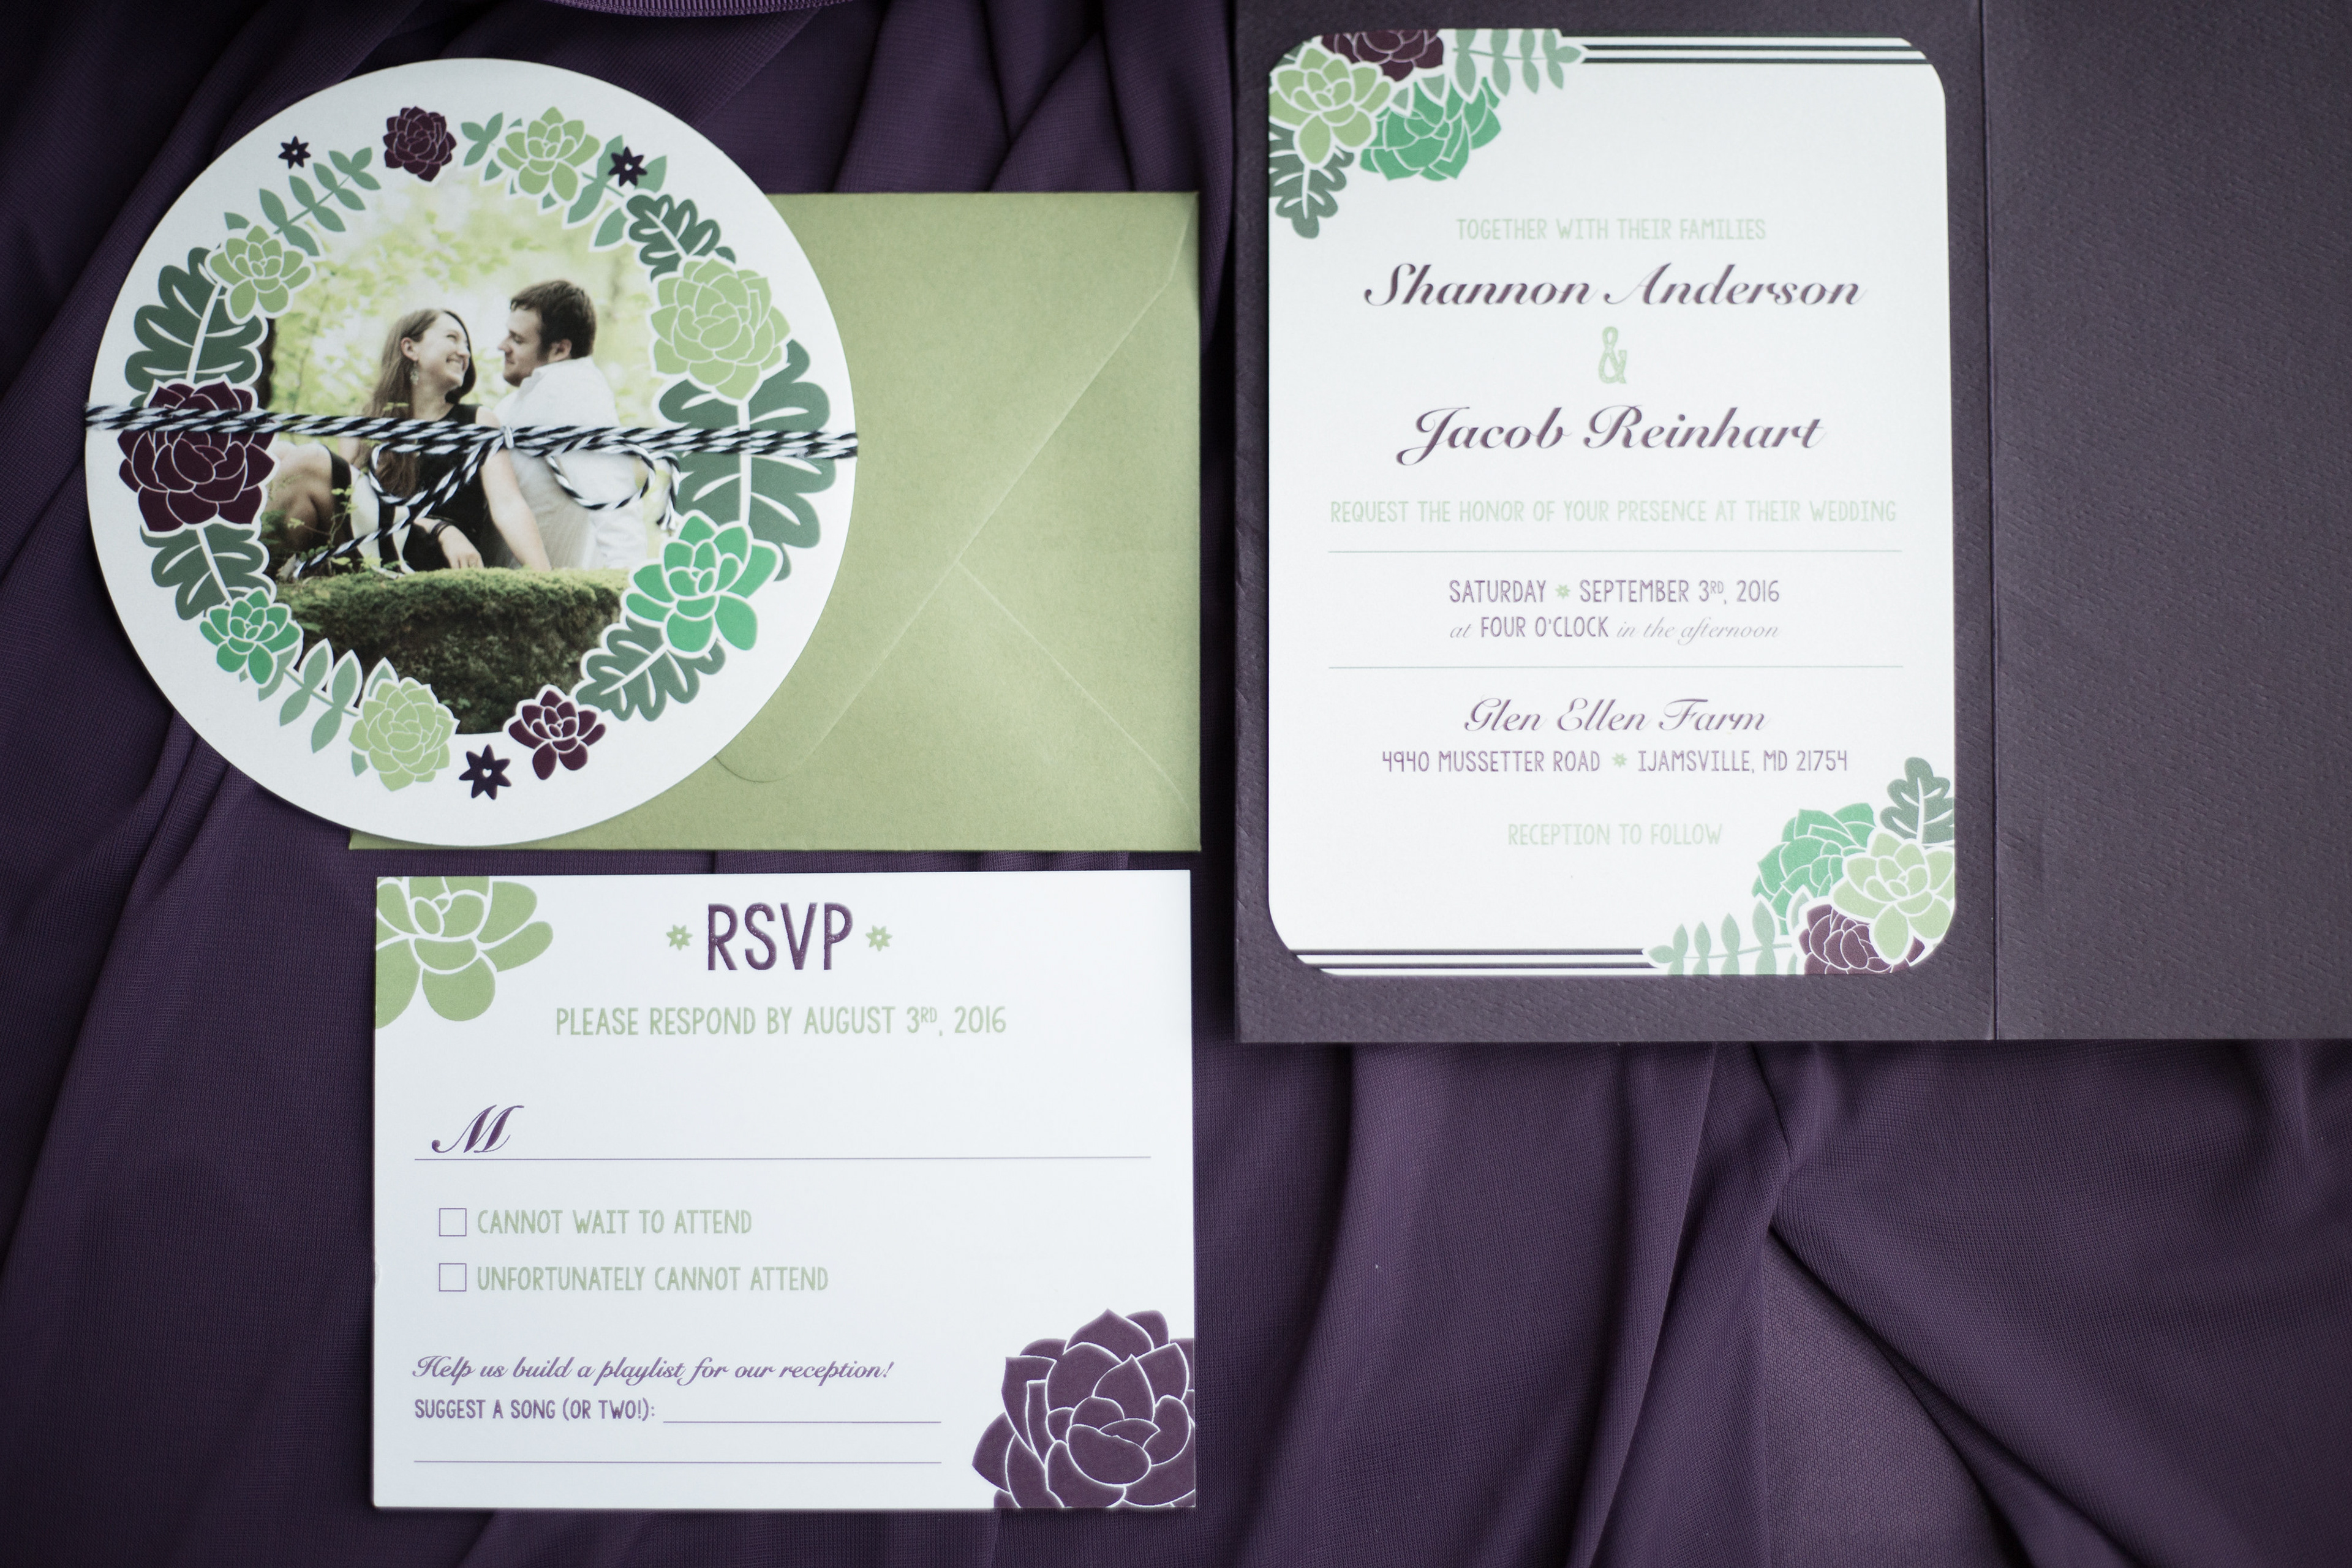 Reinhart Graphic Design - Reinhart Wedding Invitation